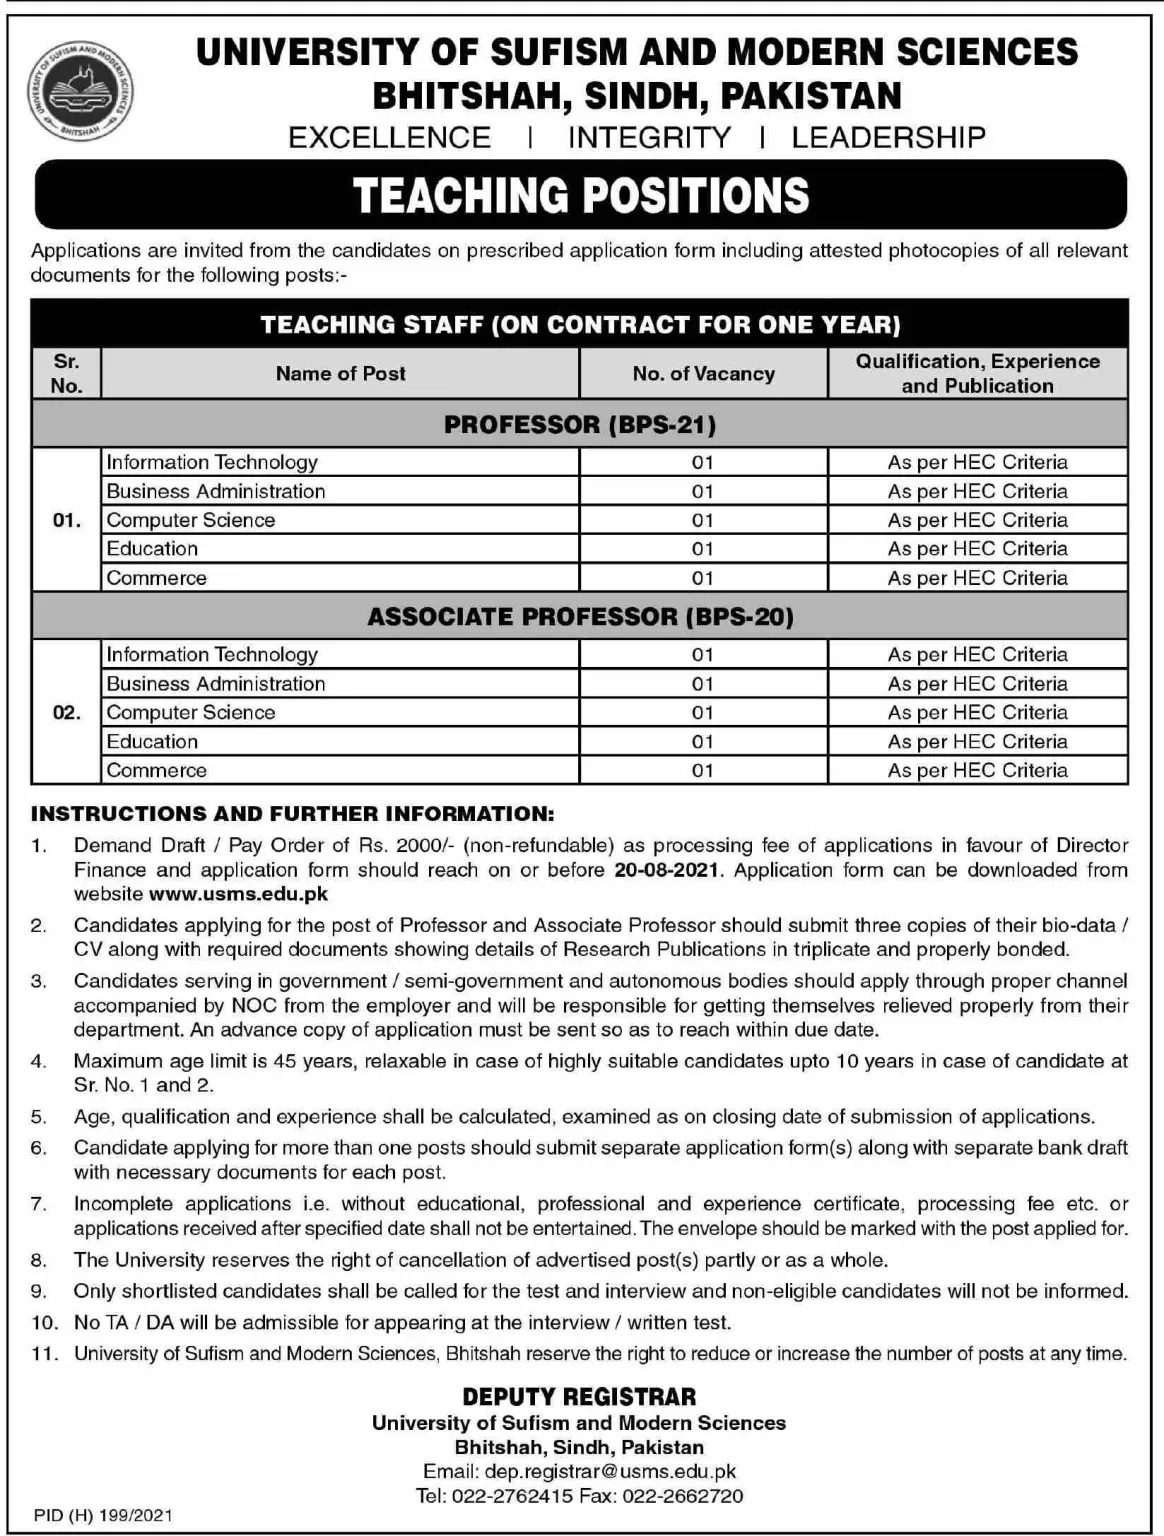 University of Sufism and Modern Sciences USMS Matiari Jobs 2021